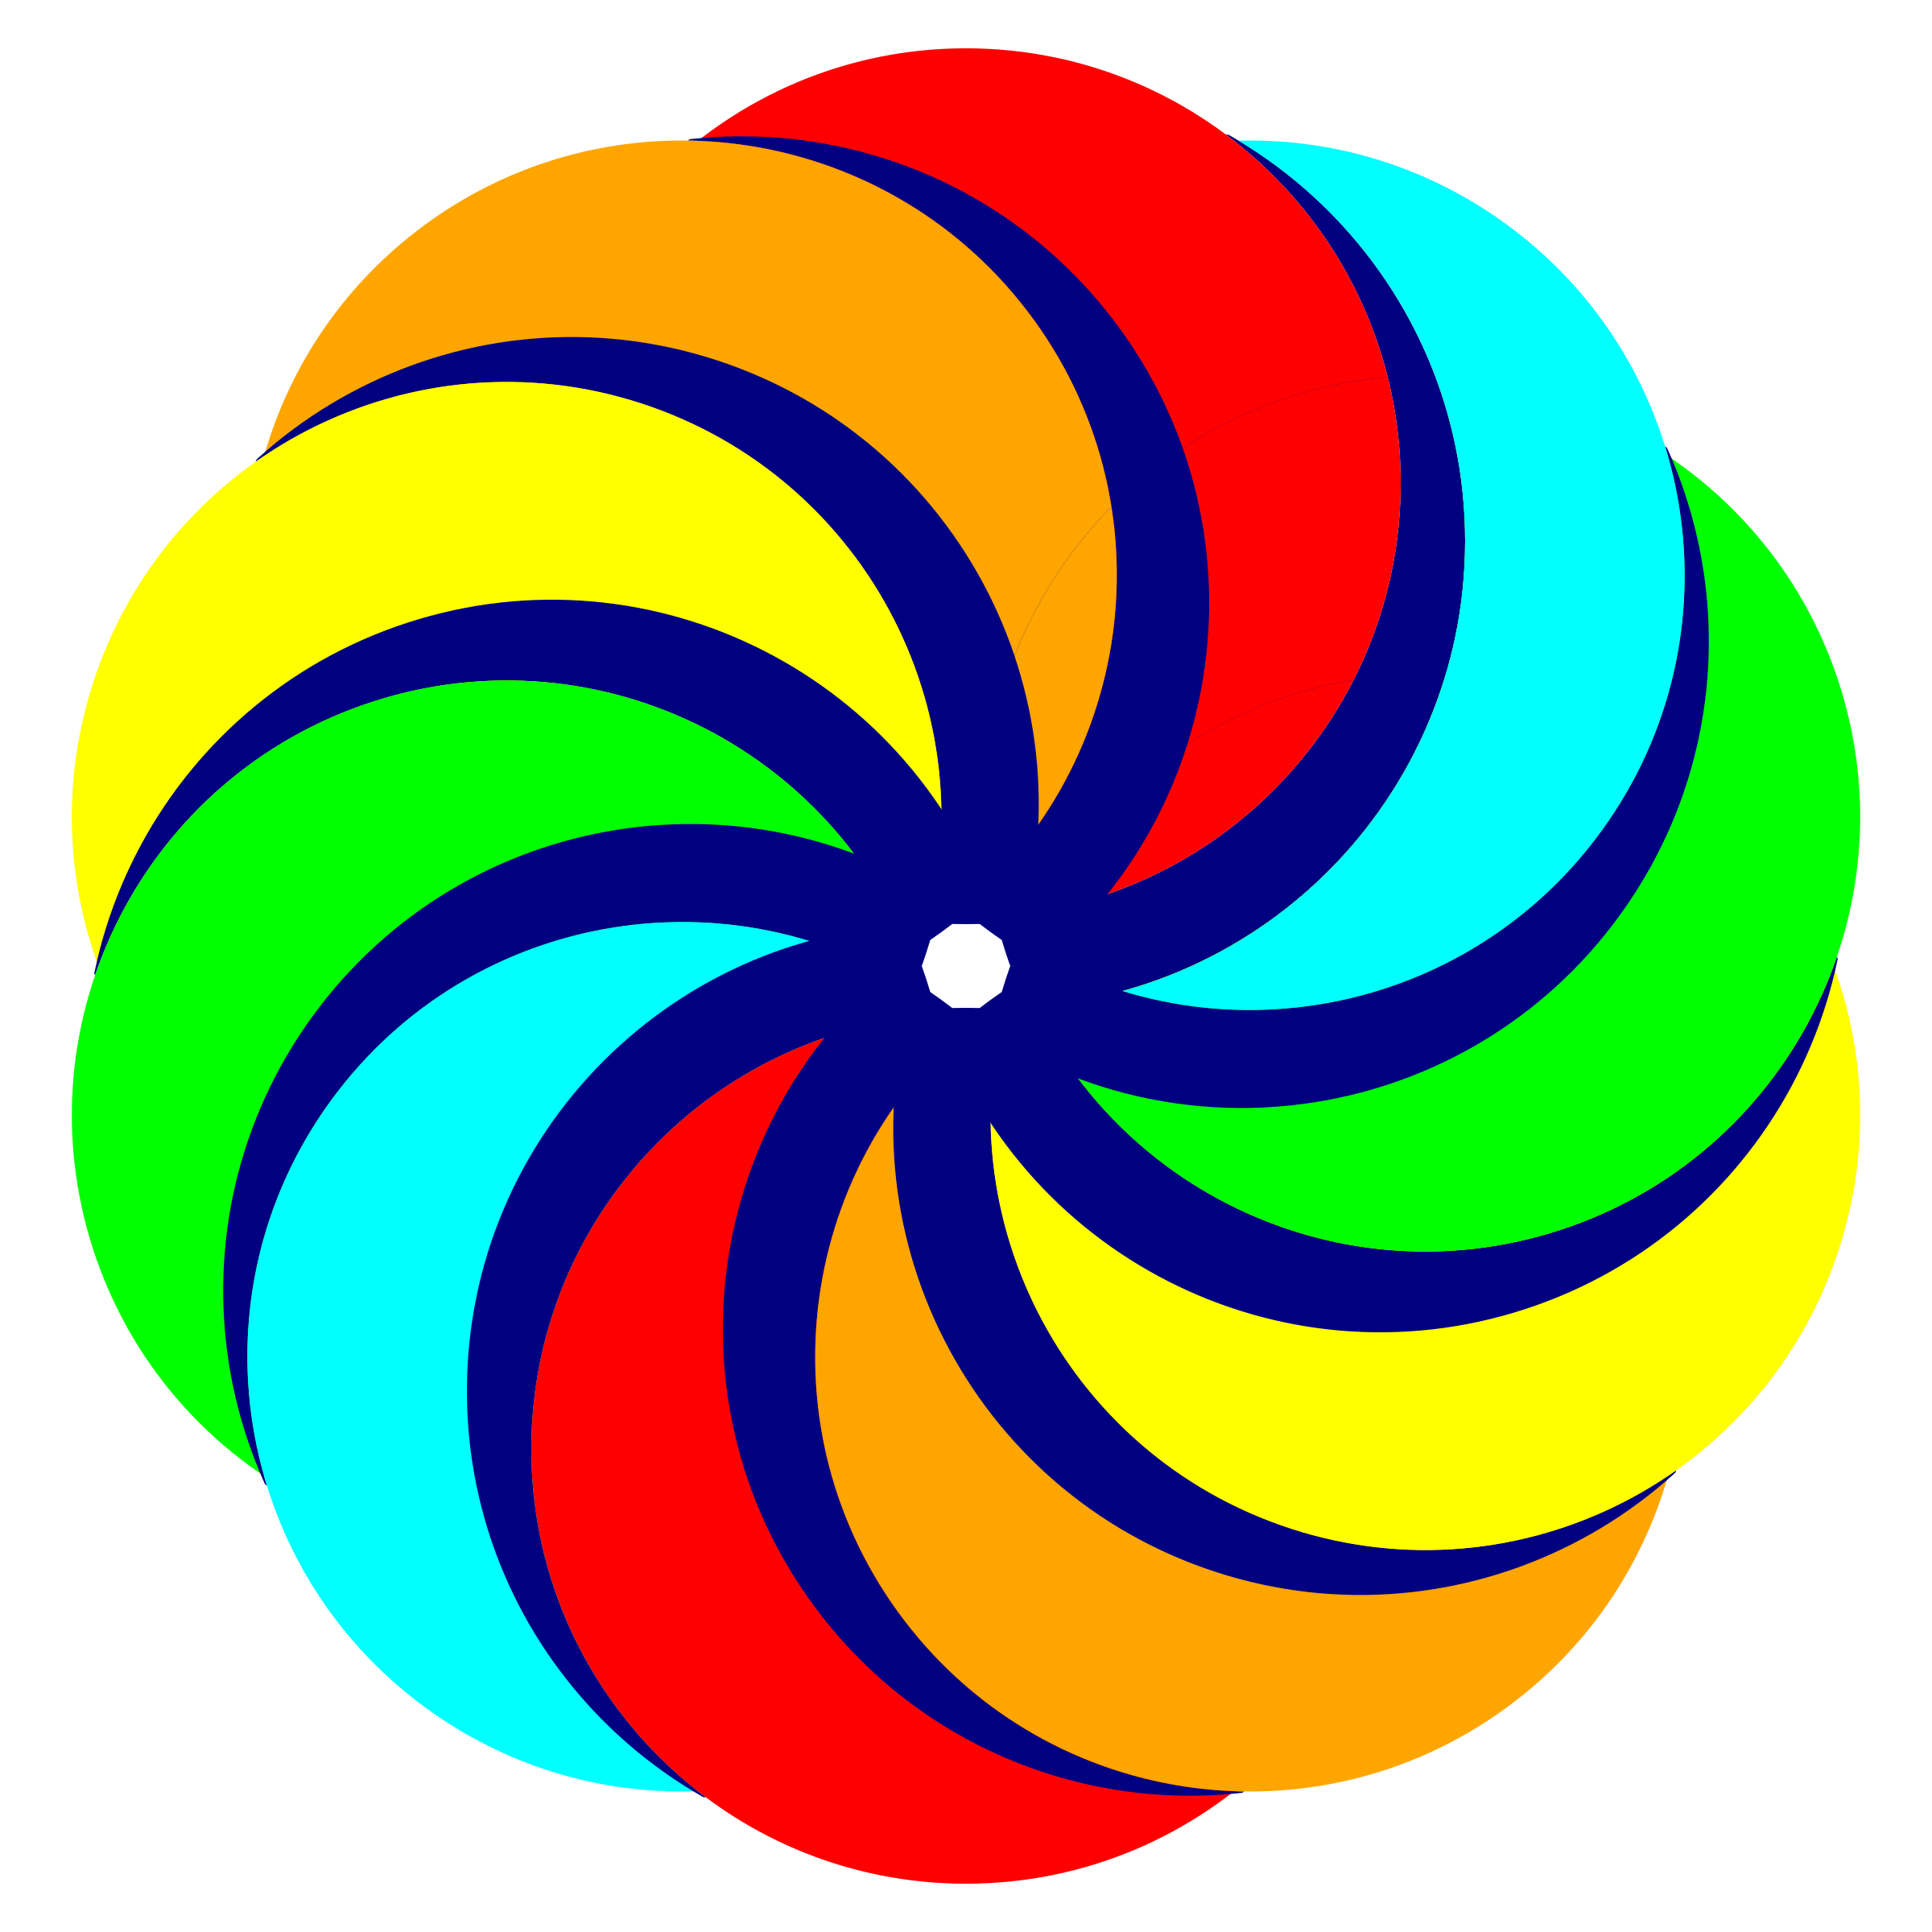 Colored Circles in Decagon shape by JayNick